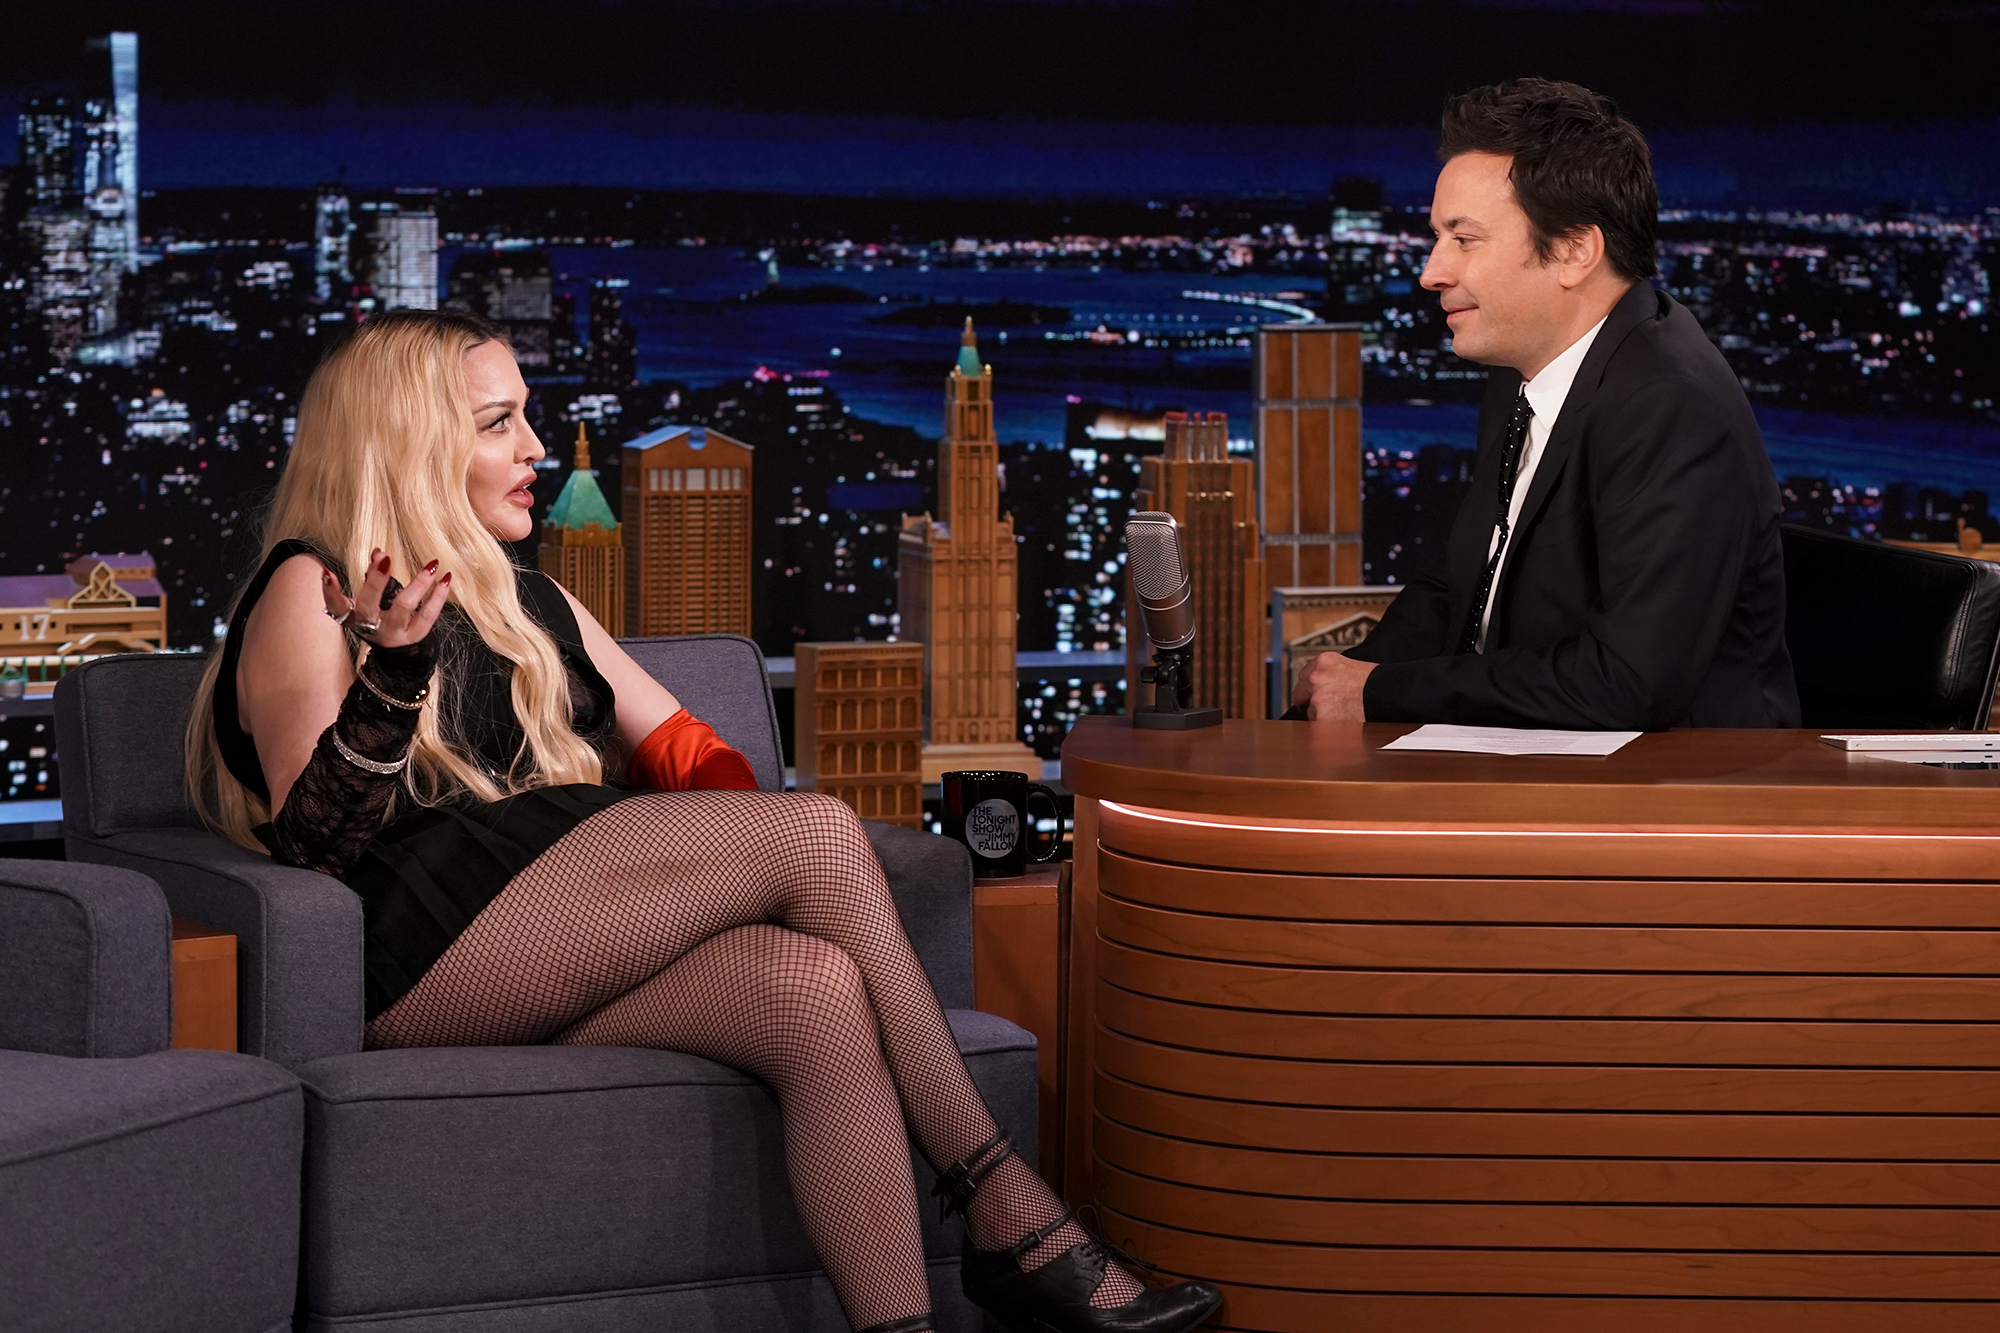 THE TONIGHT SHOW STARRING JIMMY FALLON -- Episode 1531 -- Pictured: (l-r) Singer Madonna during an interview with host Jimmy Fallon on Thursday, October 7, 2021